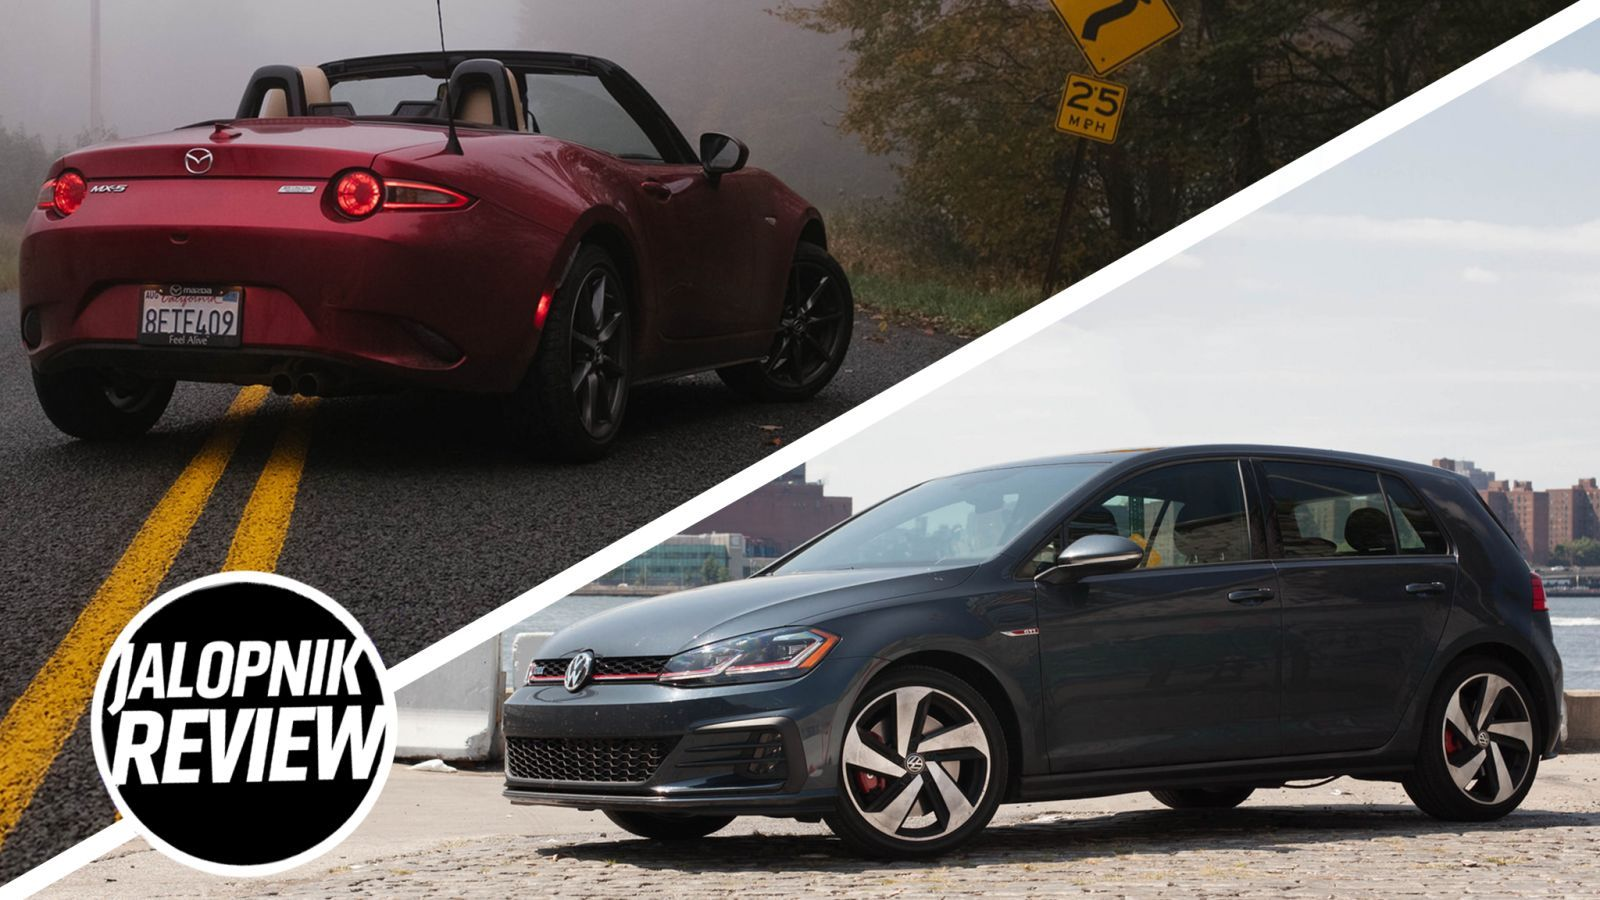 2019 Mazda Miata Vs 2018 Volkswagen Golf Gti Which To Buy